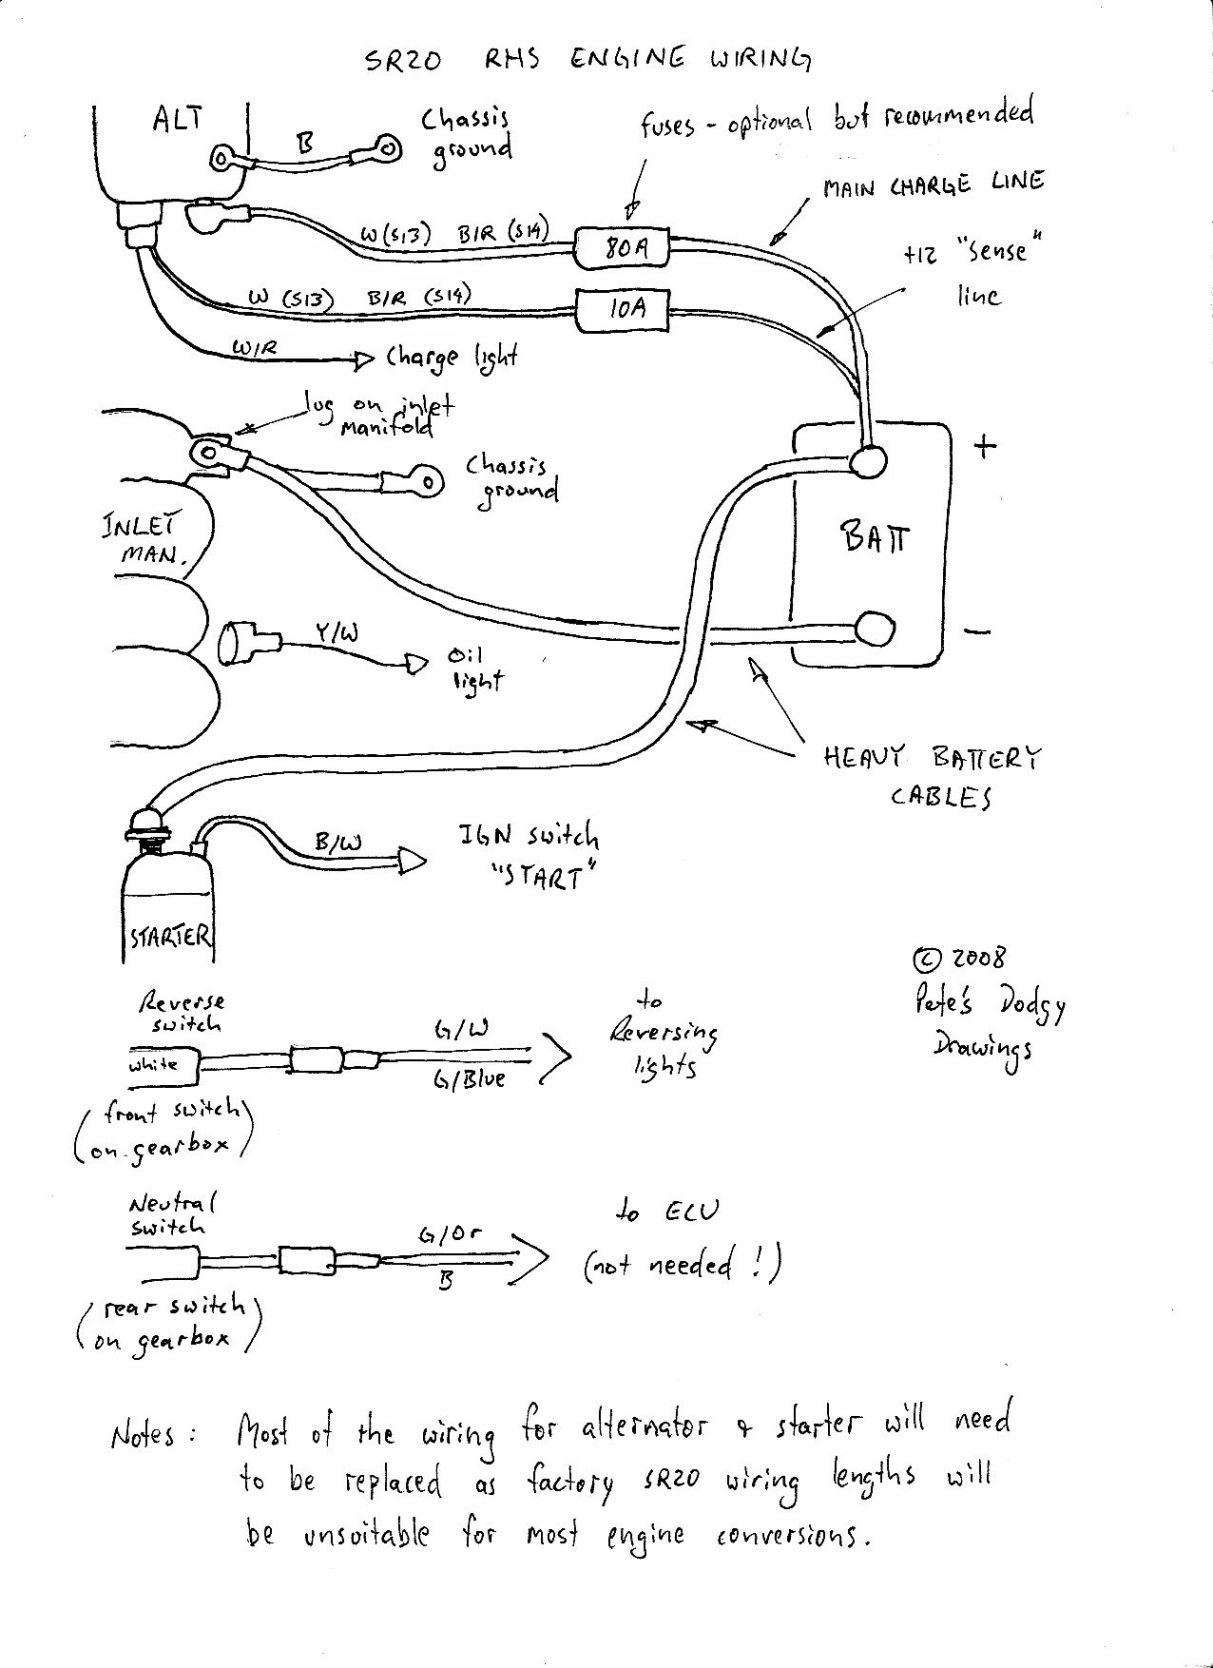 S15 wiring diagram chevrolet s pickup wiring diagrams wiring s srde wiring diagram wiring diagrams s15 sr20det wiring diagrams fo home cheapraybanclubmaster Gallery